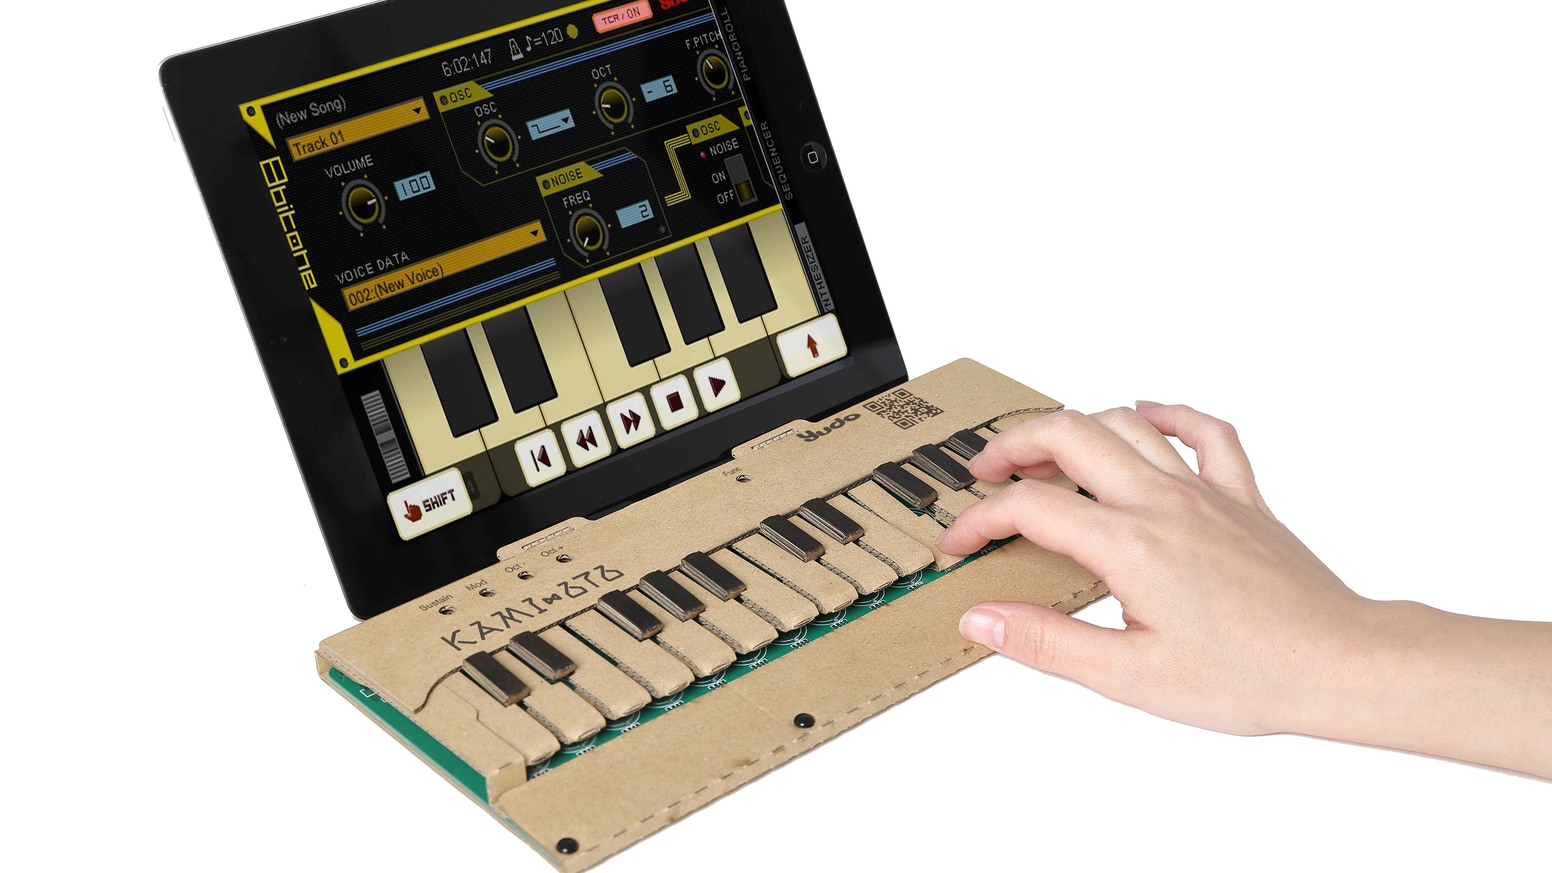 Diy Cardboard Musical Keyboard Kit Kami Oto By Reo Nagumo Kickstarter Electronic Projects Simple Easy And Fun Make Own Play With